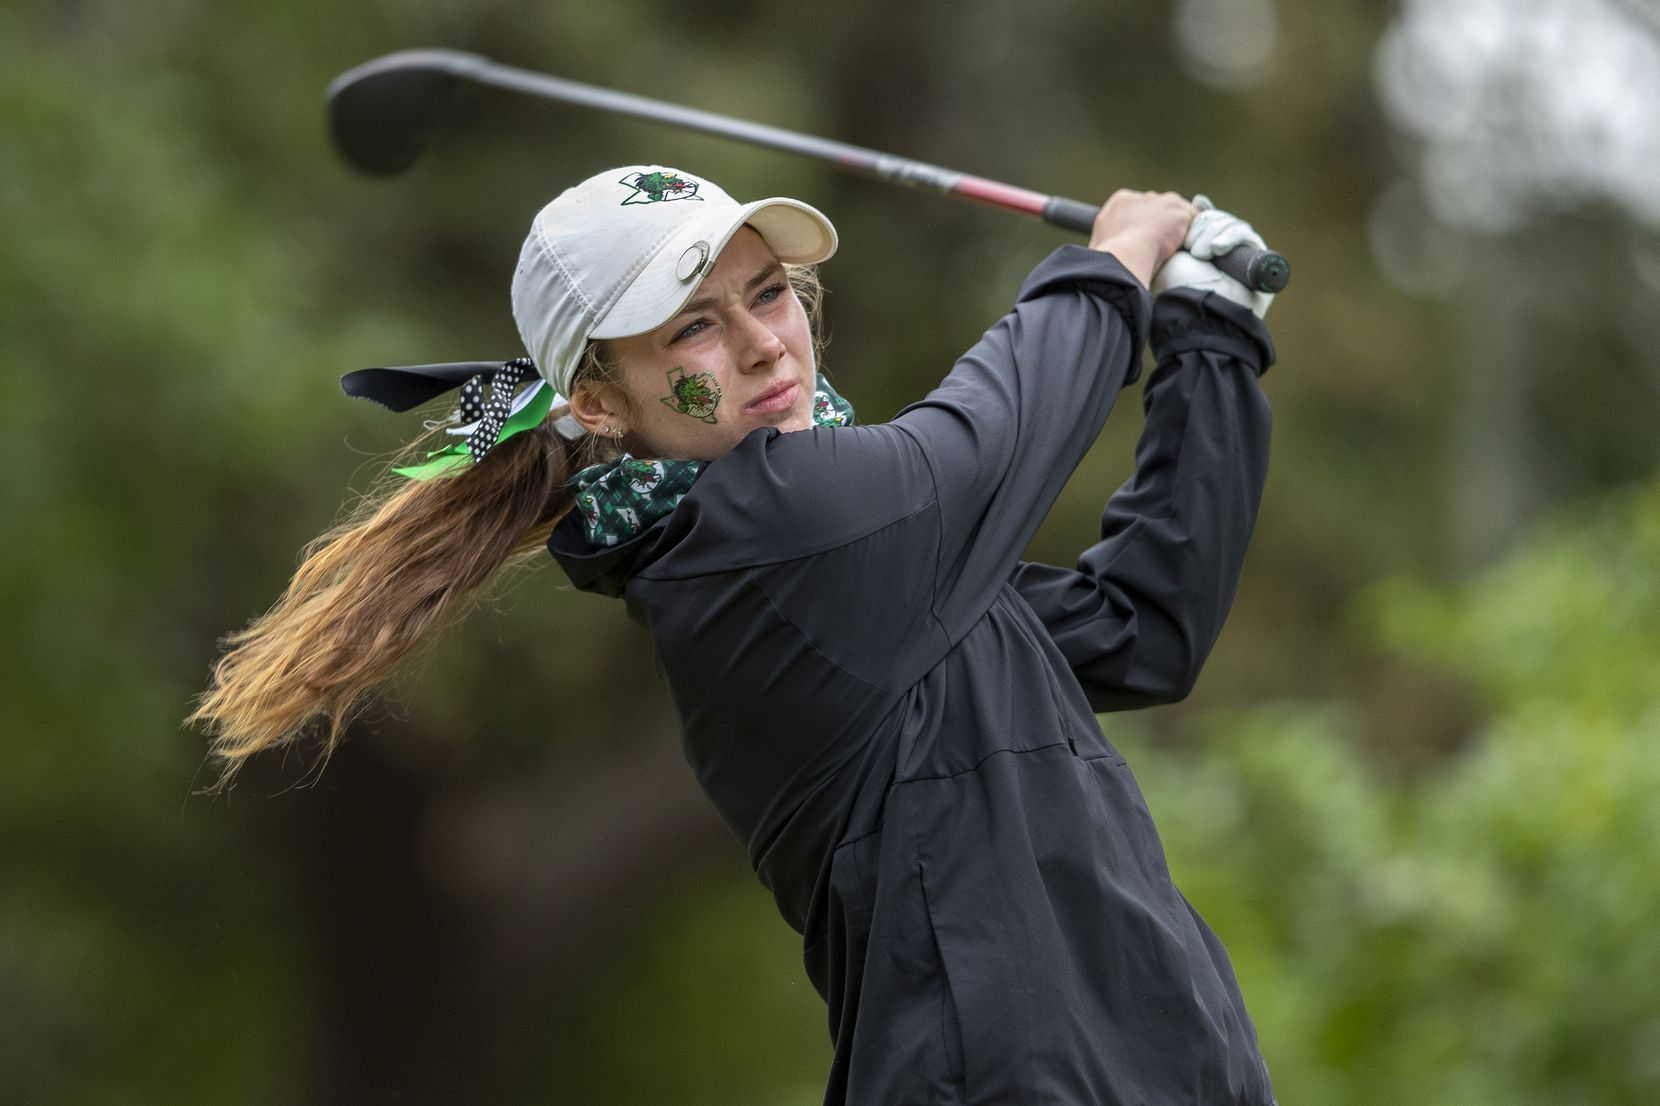 Southlake Carroll's MaKayla Tyrrell hits from the 1st tee box during the final day of the UIL Class 5A girls golf tournament in Georgetown, Tuesday, May 11, 2021. (Stephen Spillman/Special Contributor)